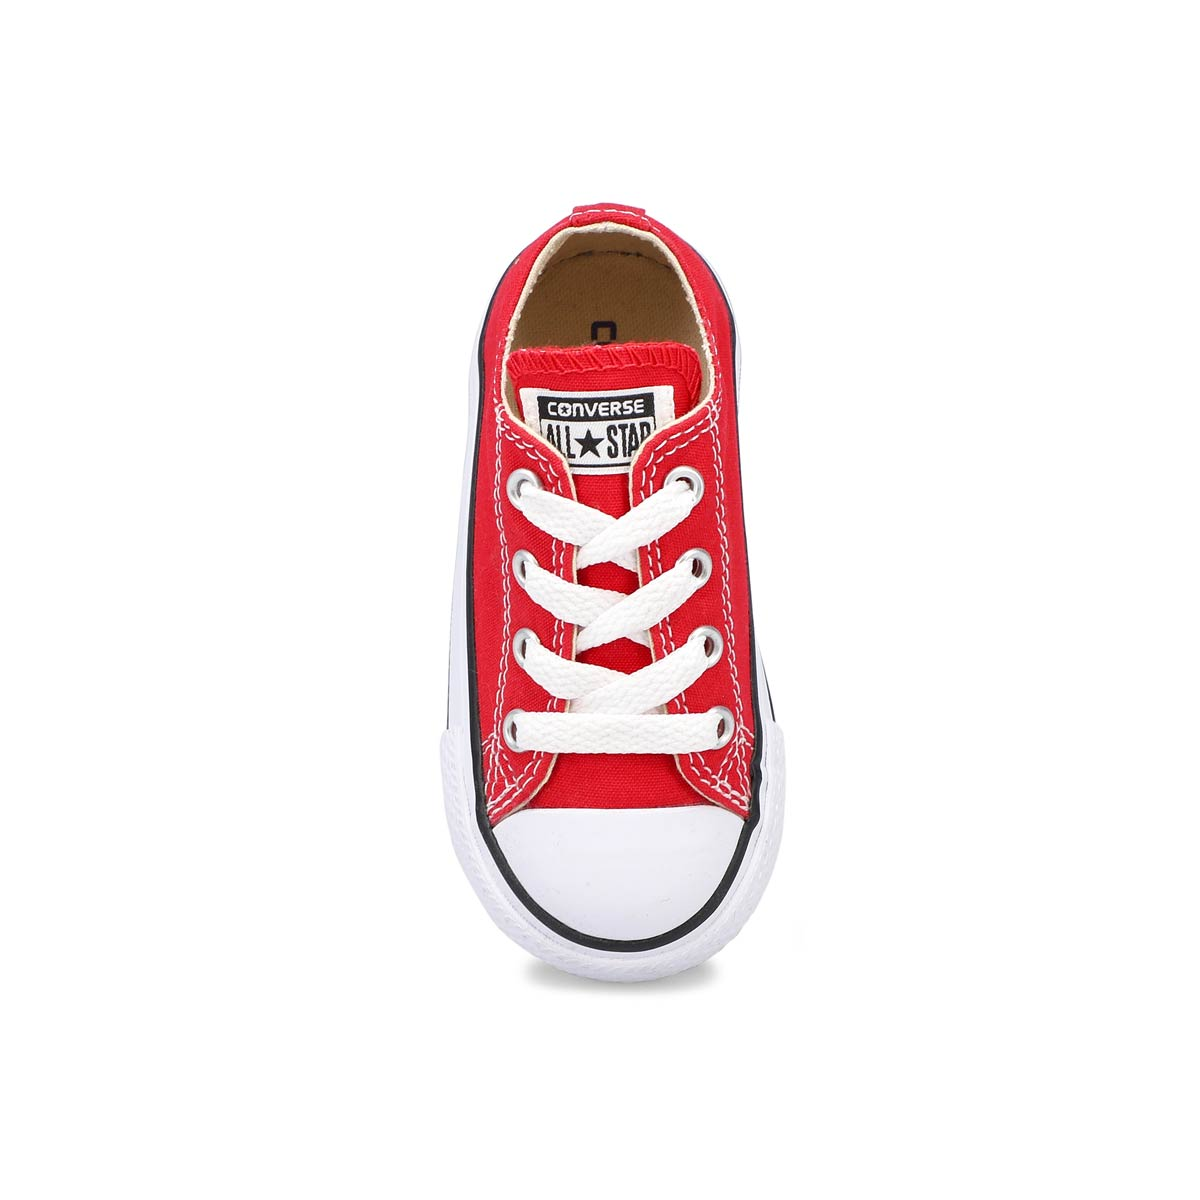 Infs CTAS Core red sneaker